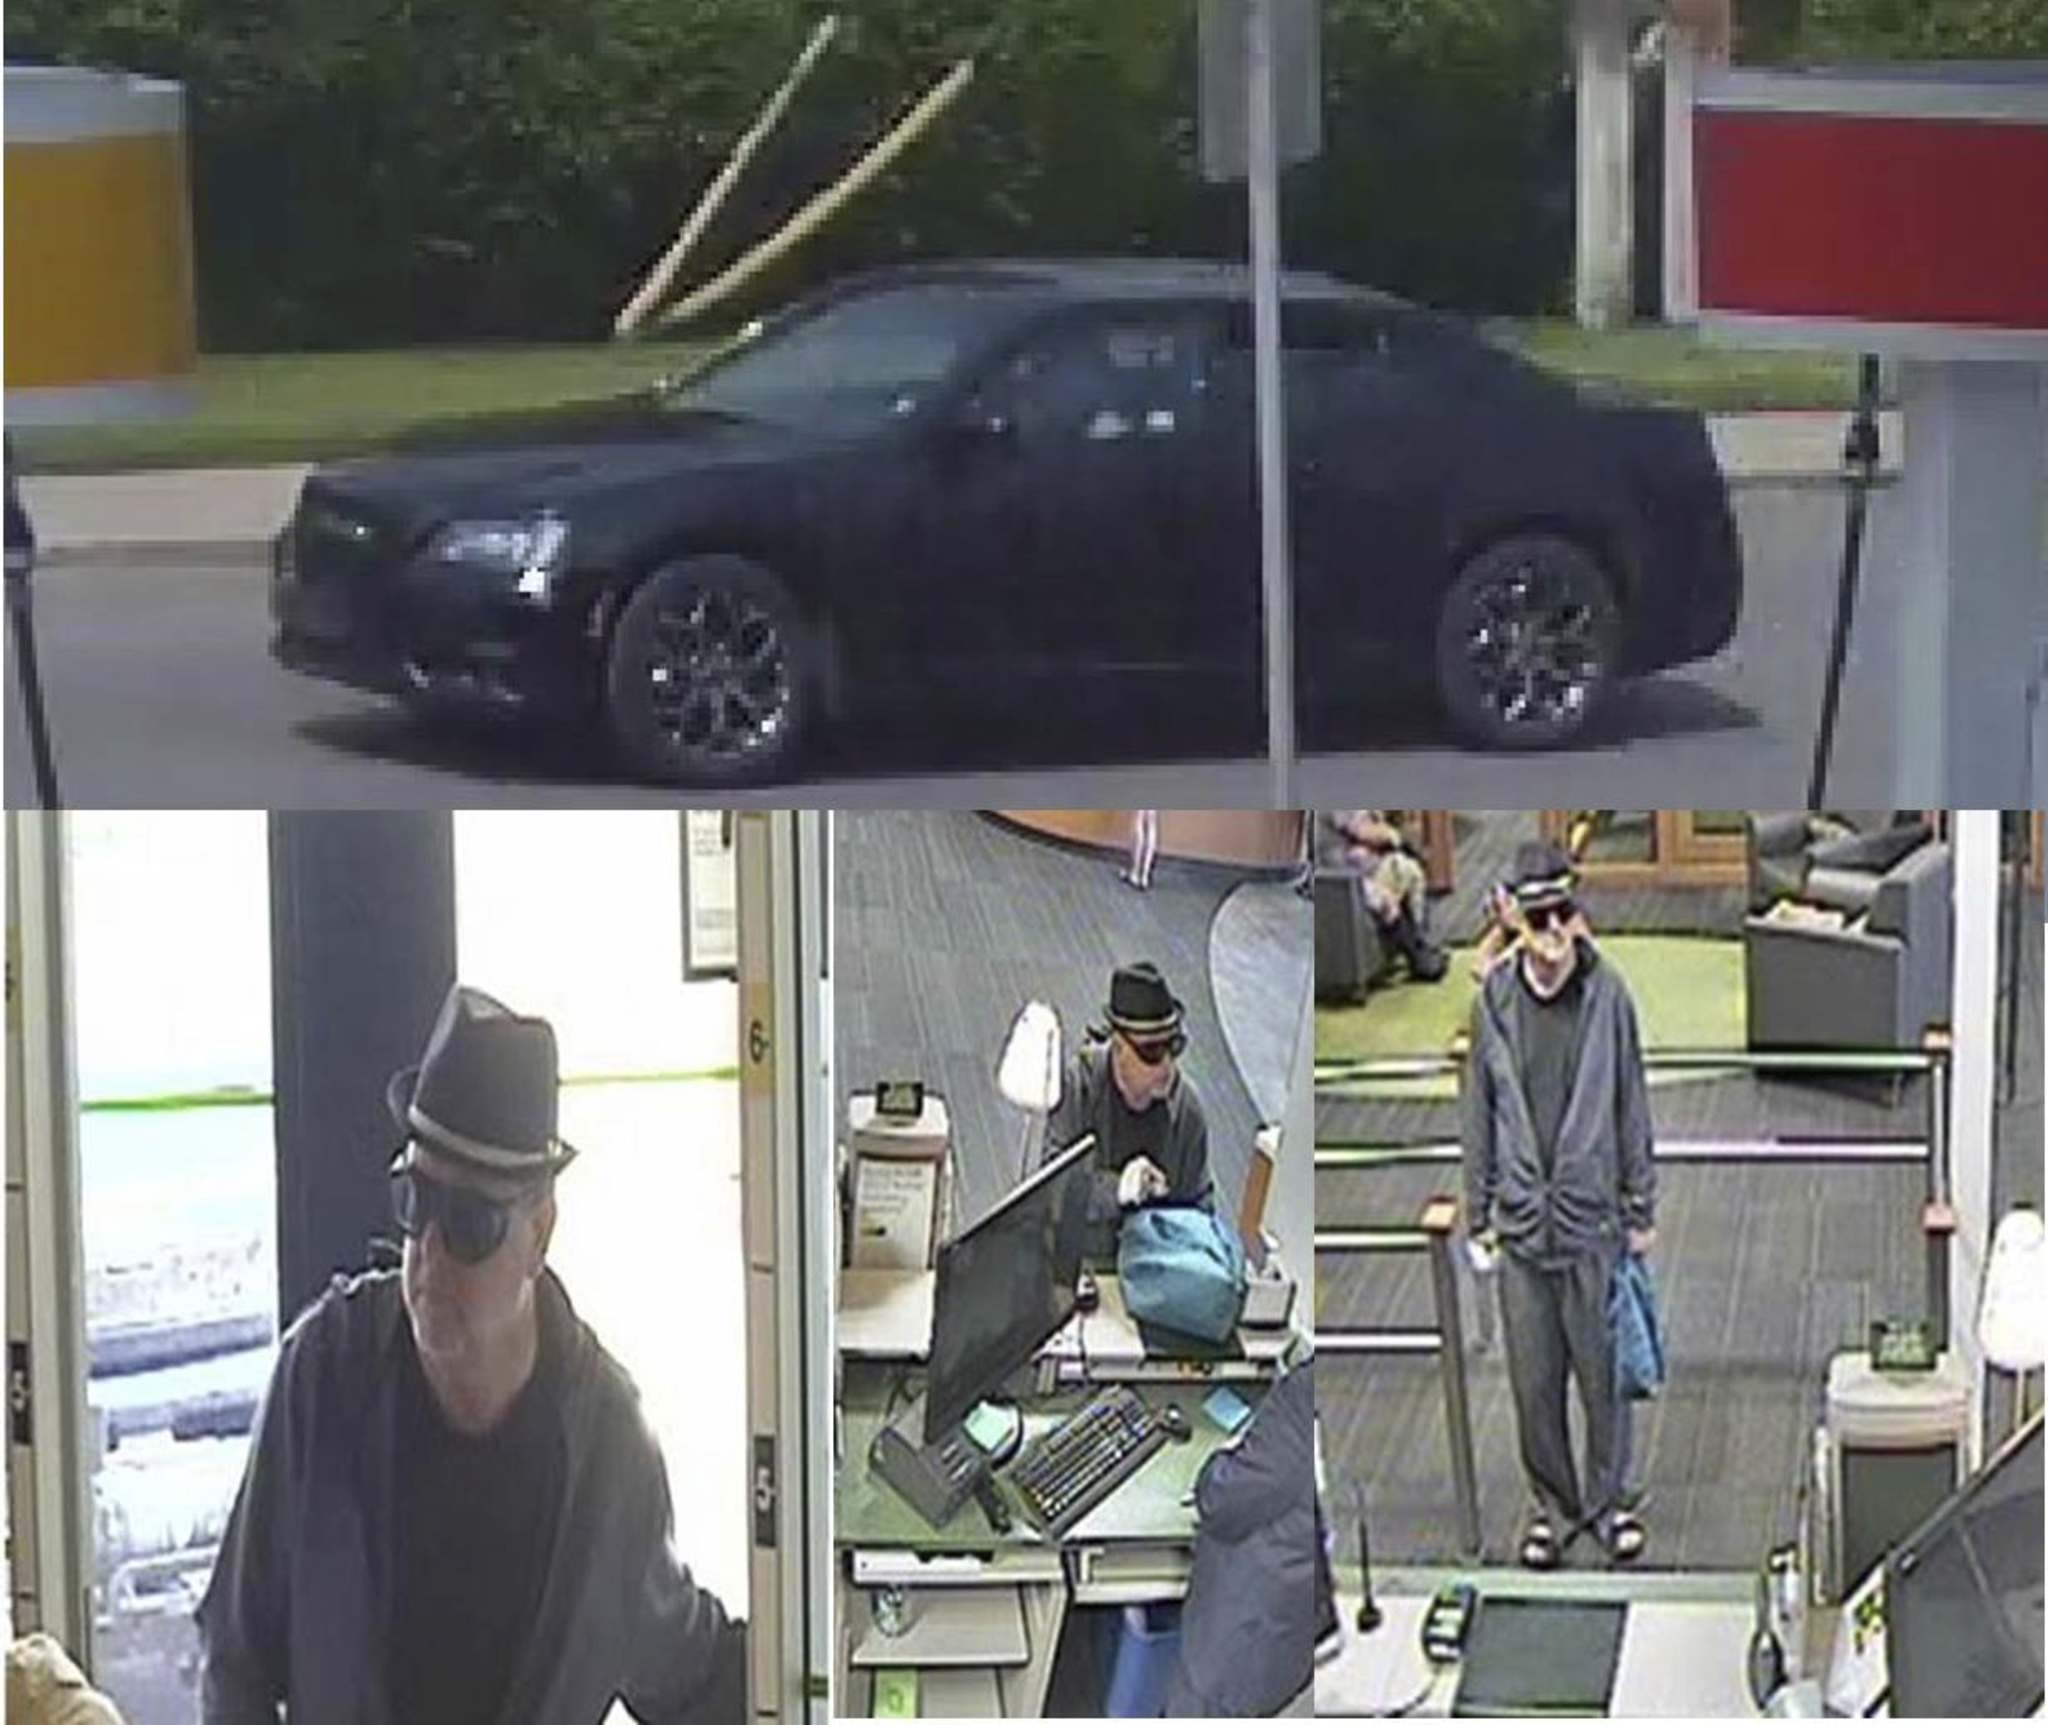 Saskatoon Police Service released these surveillance images in August 2017 in an effort to identify a suspect in a robbery of a financial institution. (Handout photo)